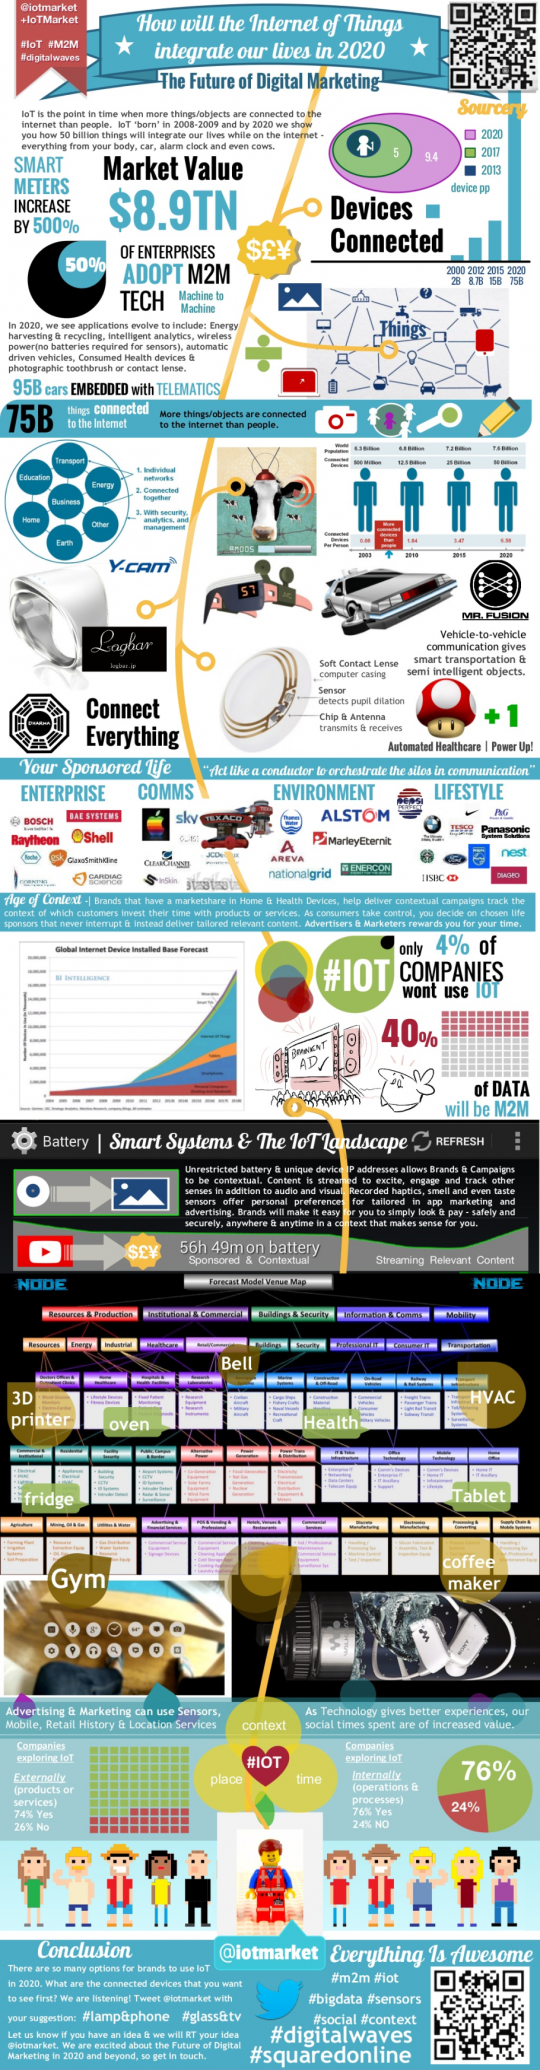 How will The Internet of Things Integrate our Lives in 2020 @iotmarket